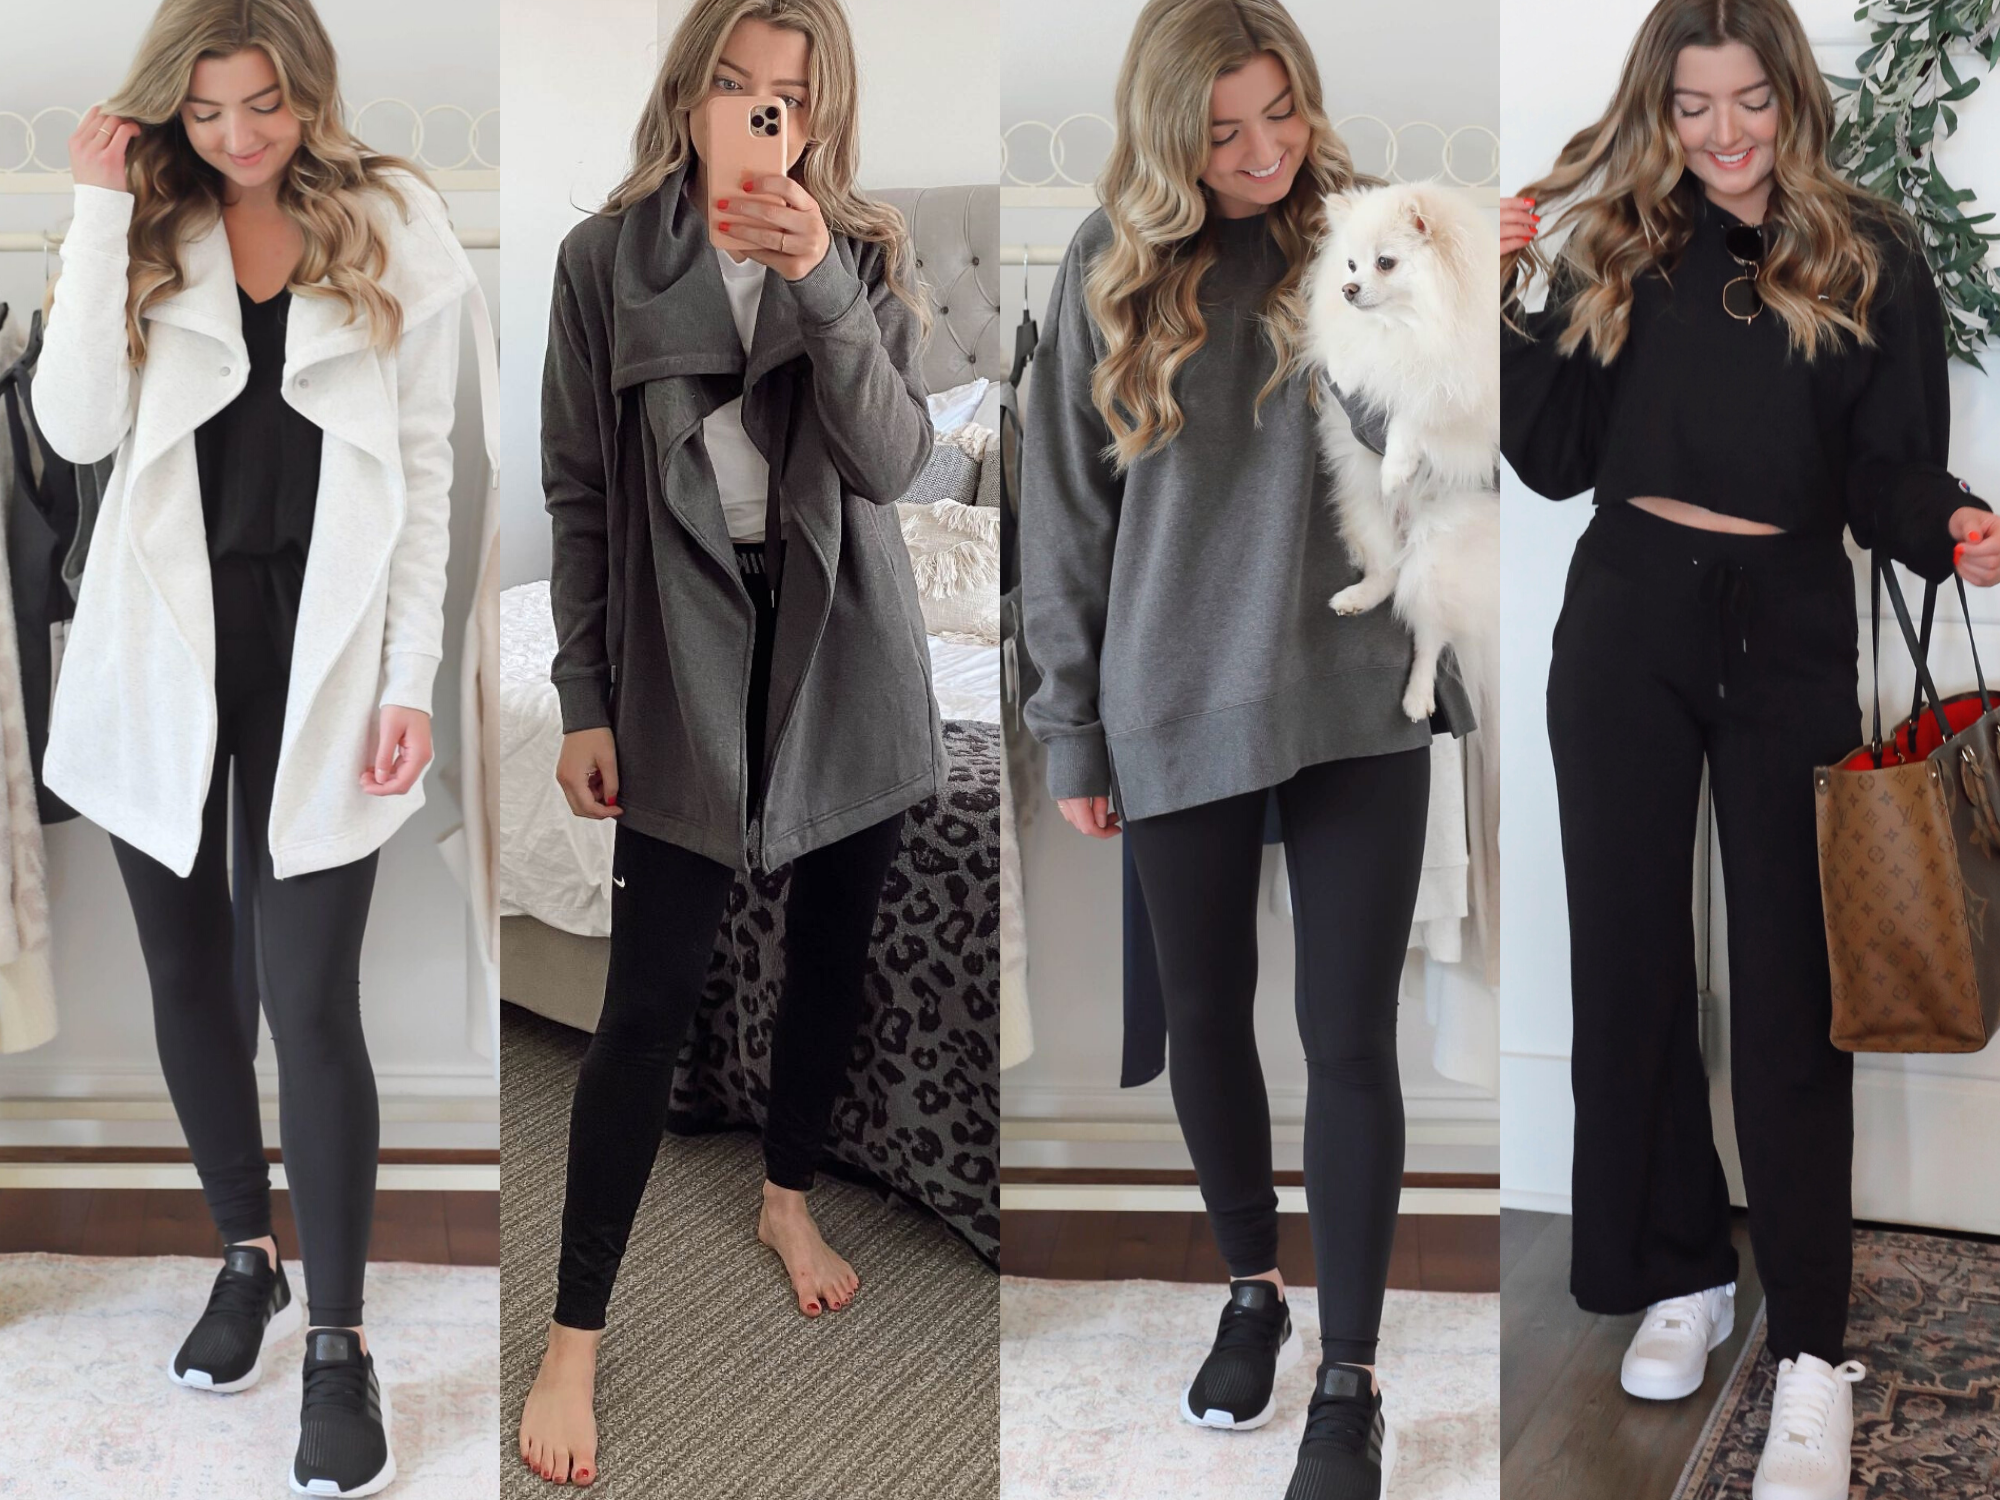 Nordstrom Anniversary Sale outfits tops sweaters dresss shoes accessories bottoms Lauren Lindmark daily dose of charm 20